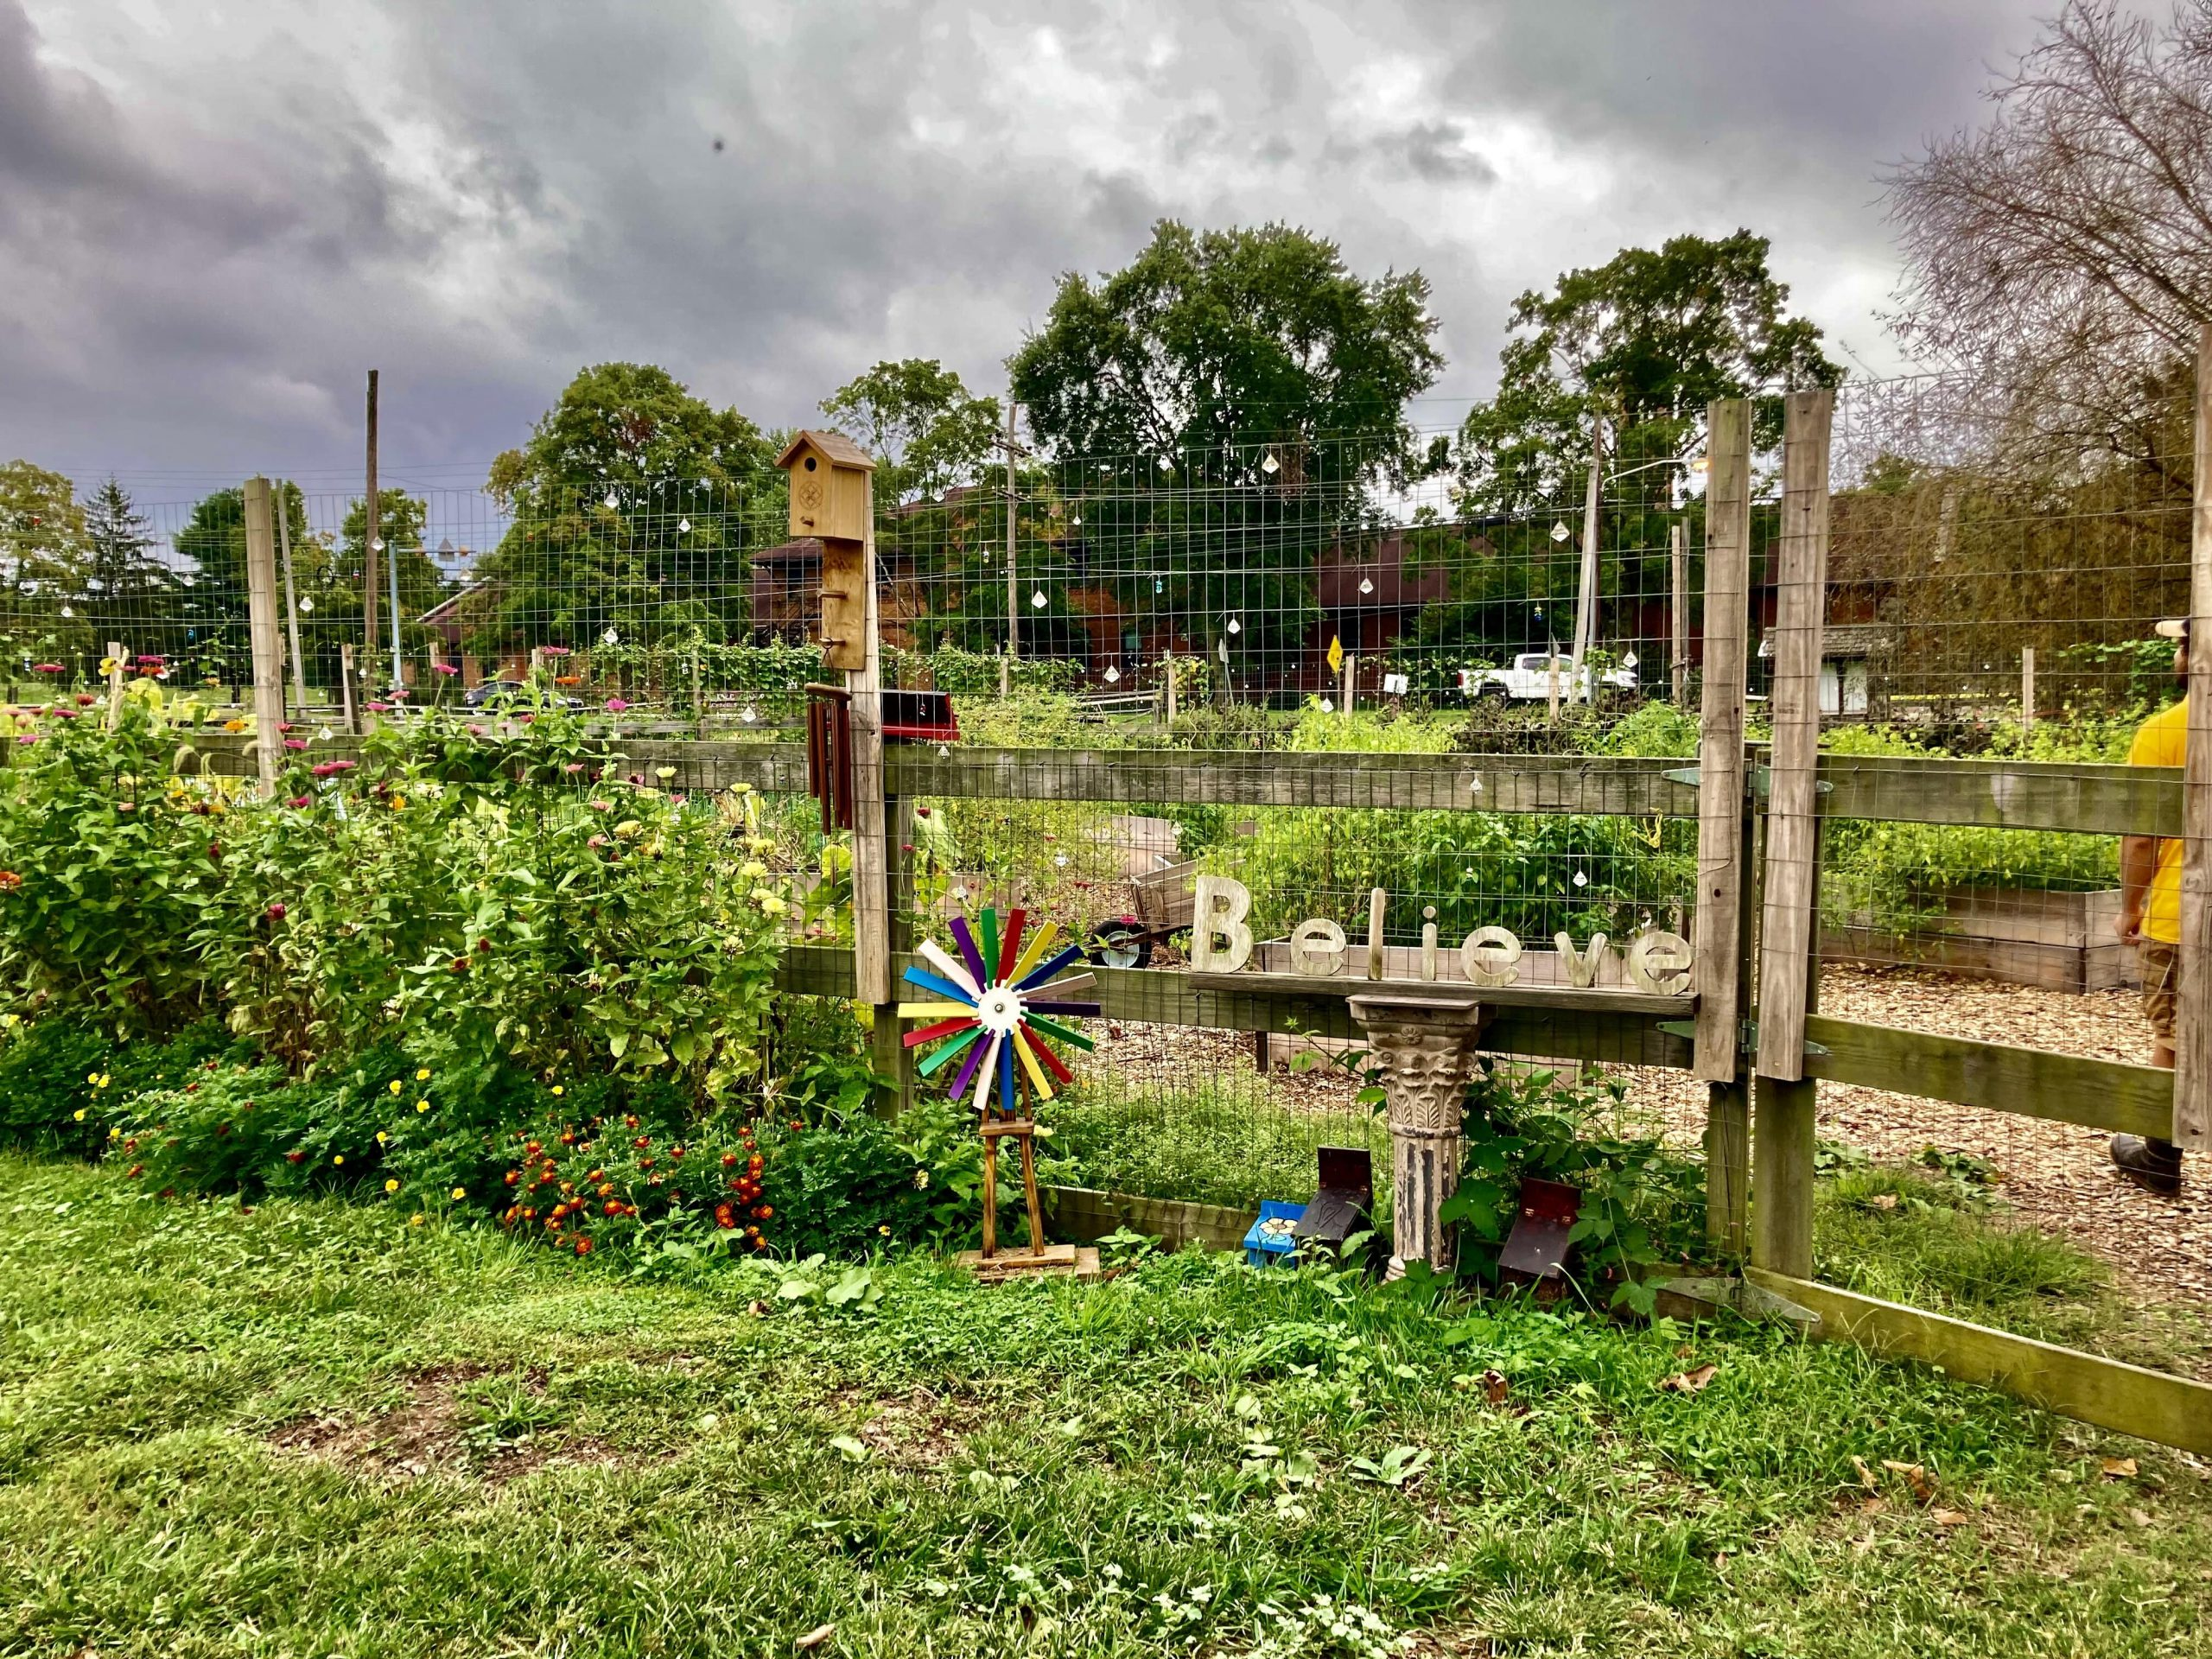 Take a peaceful trip down to Martha's farm, a community program tackling food insecurity